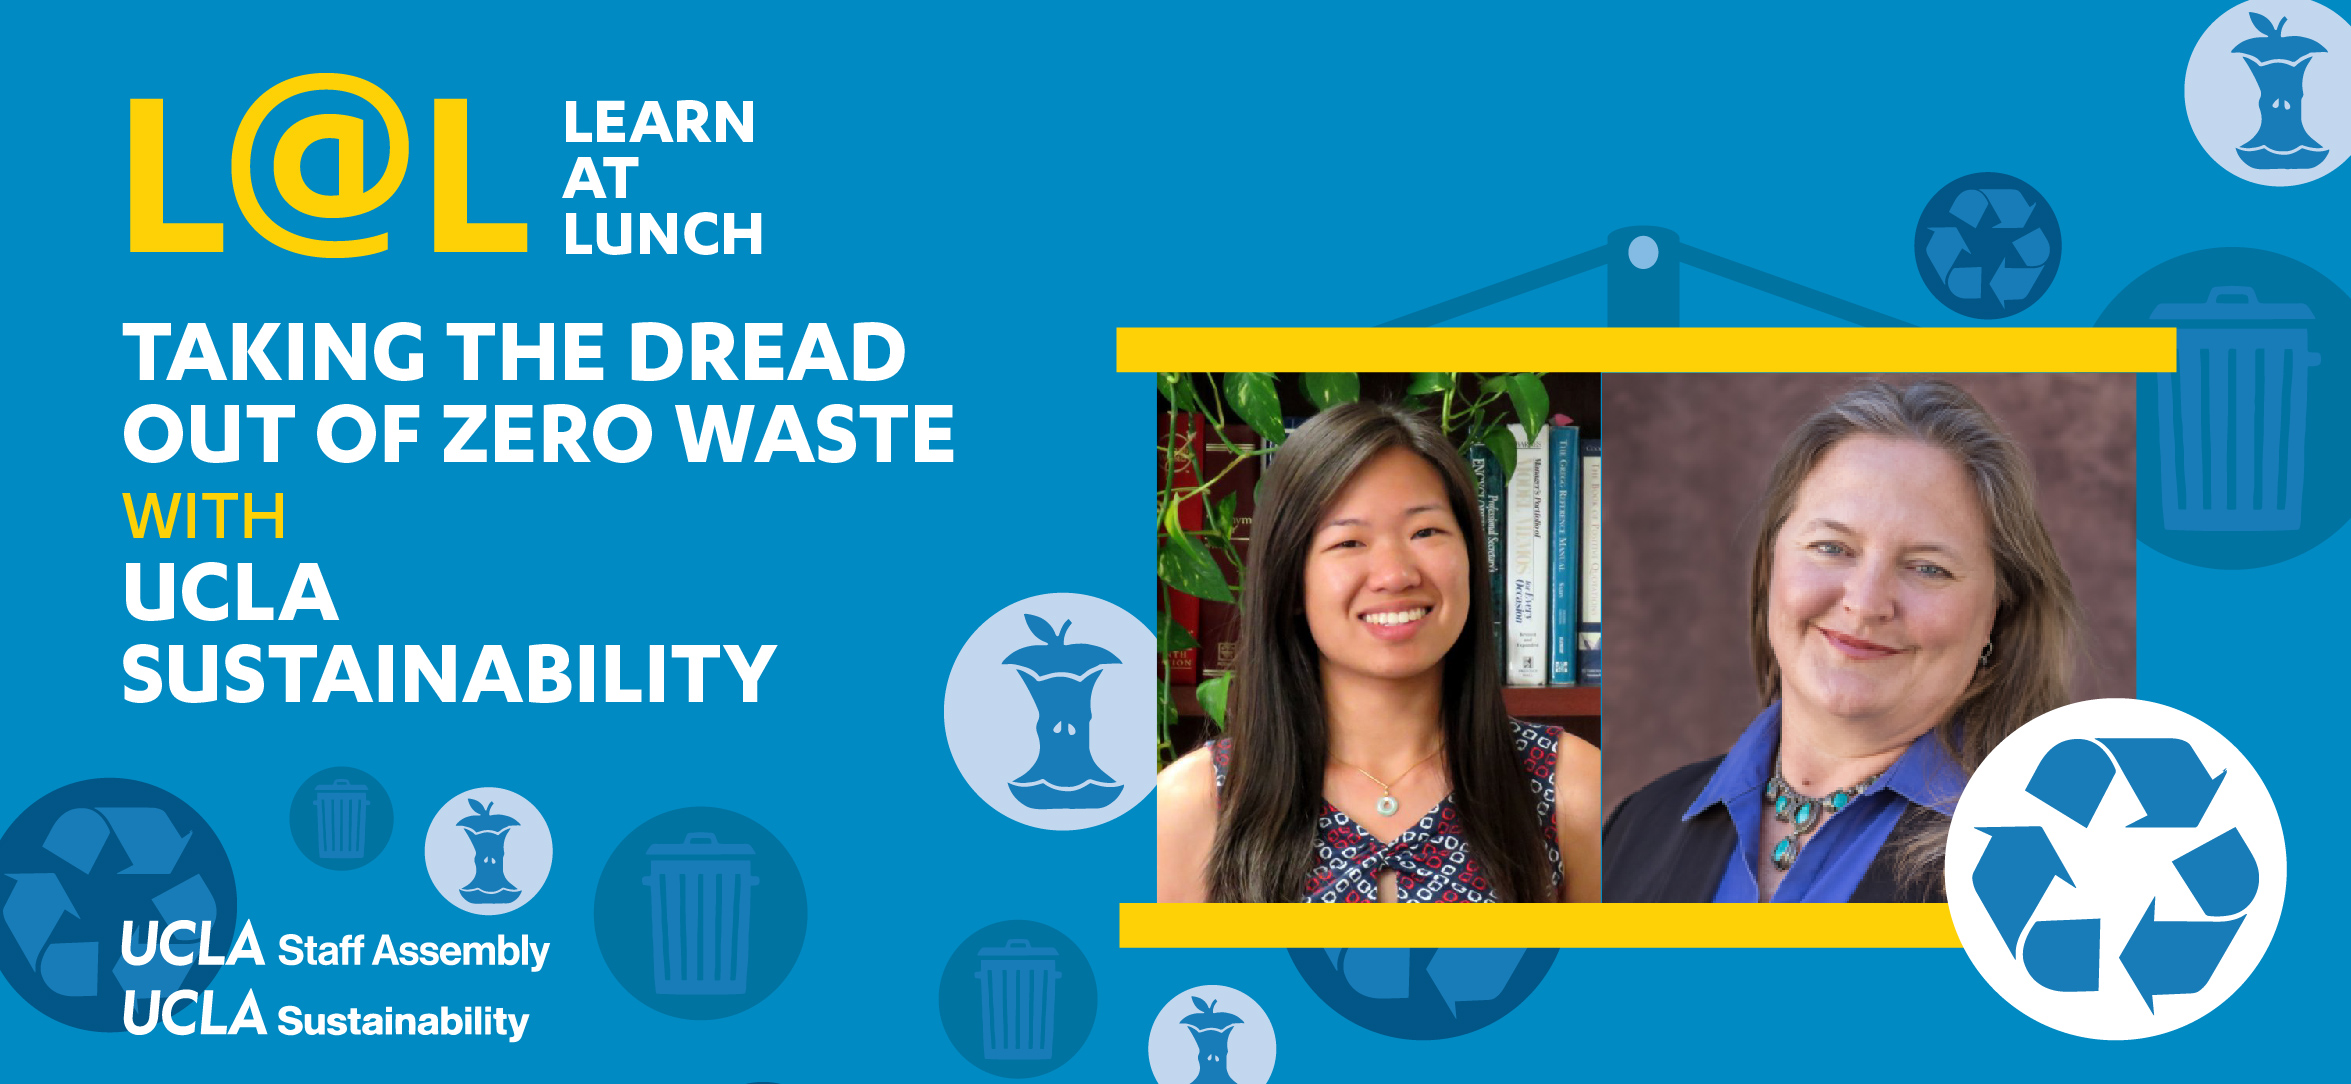 Taking the Dread out of Zero Waste with UCLA Sustainability